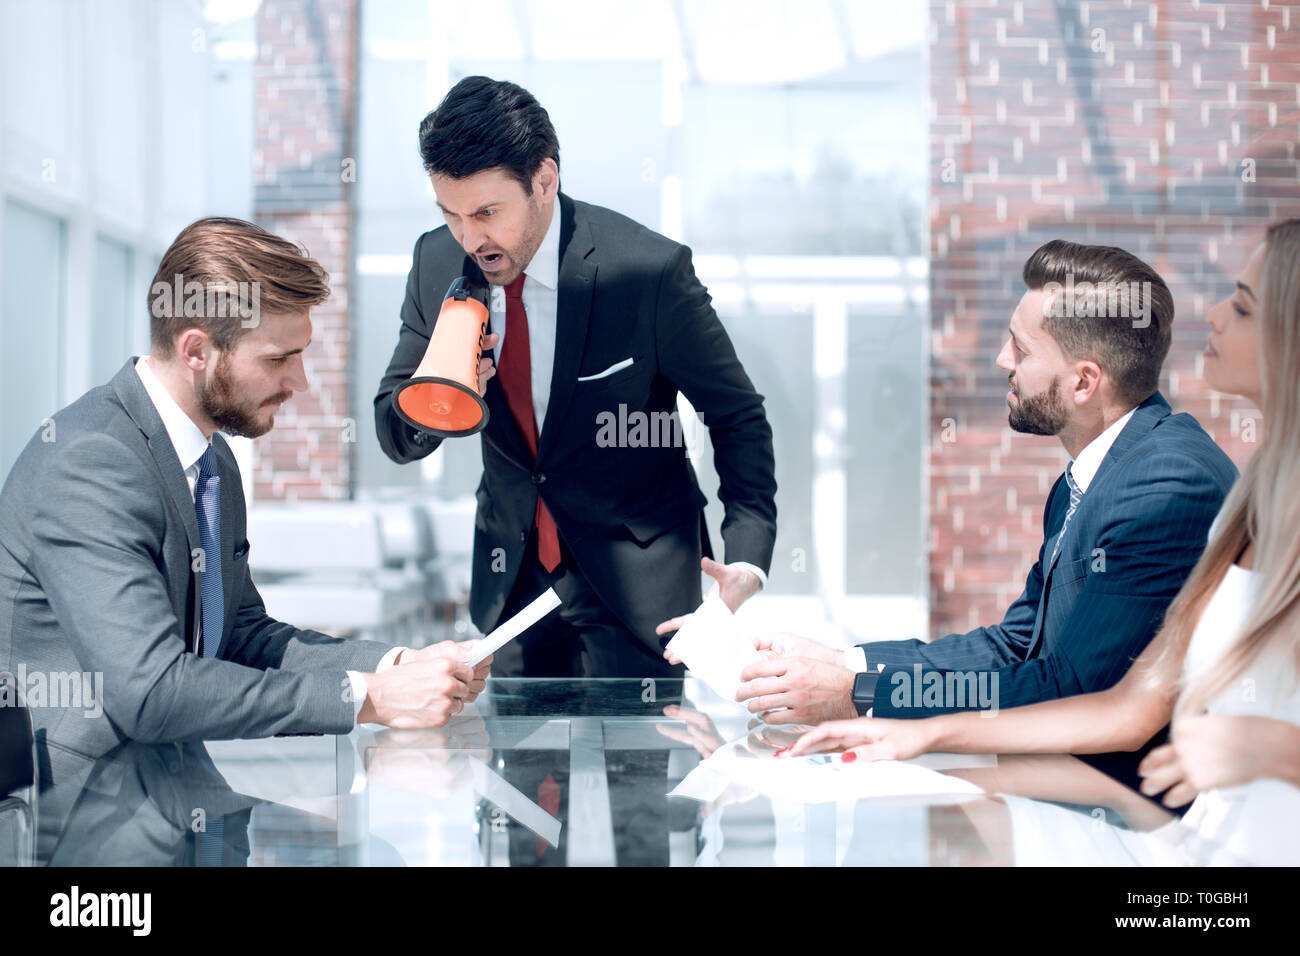 businessman with a megaphone at a meeting with the business team - Stock Image